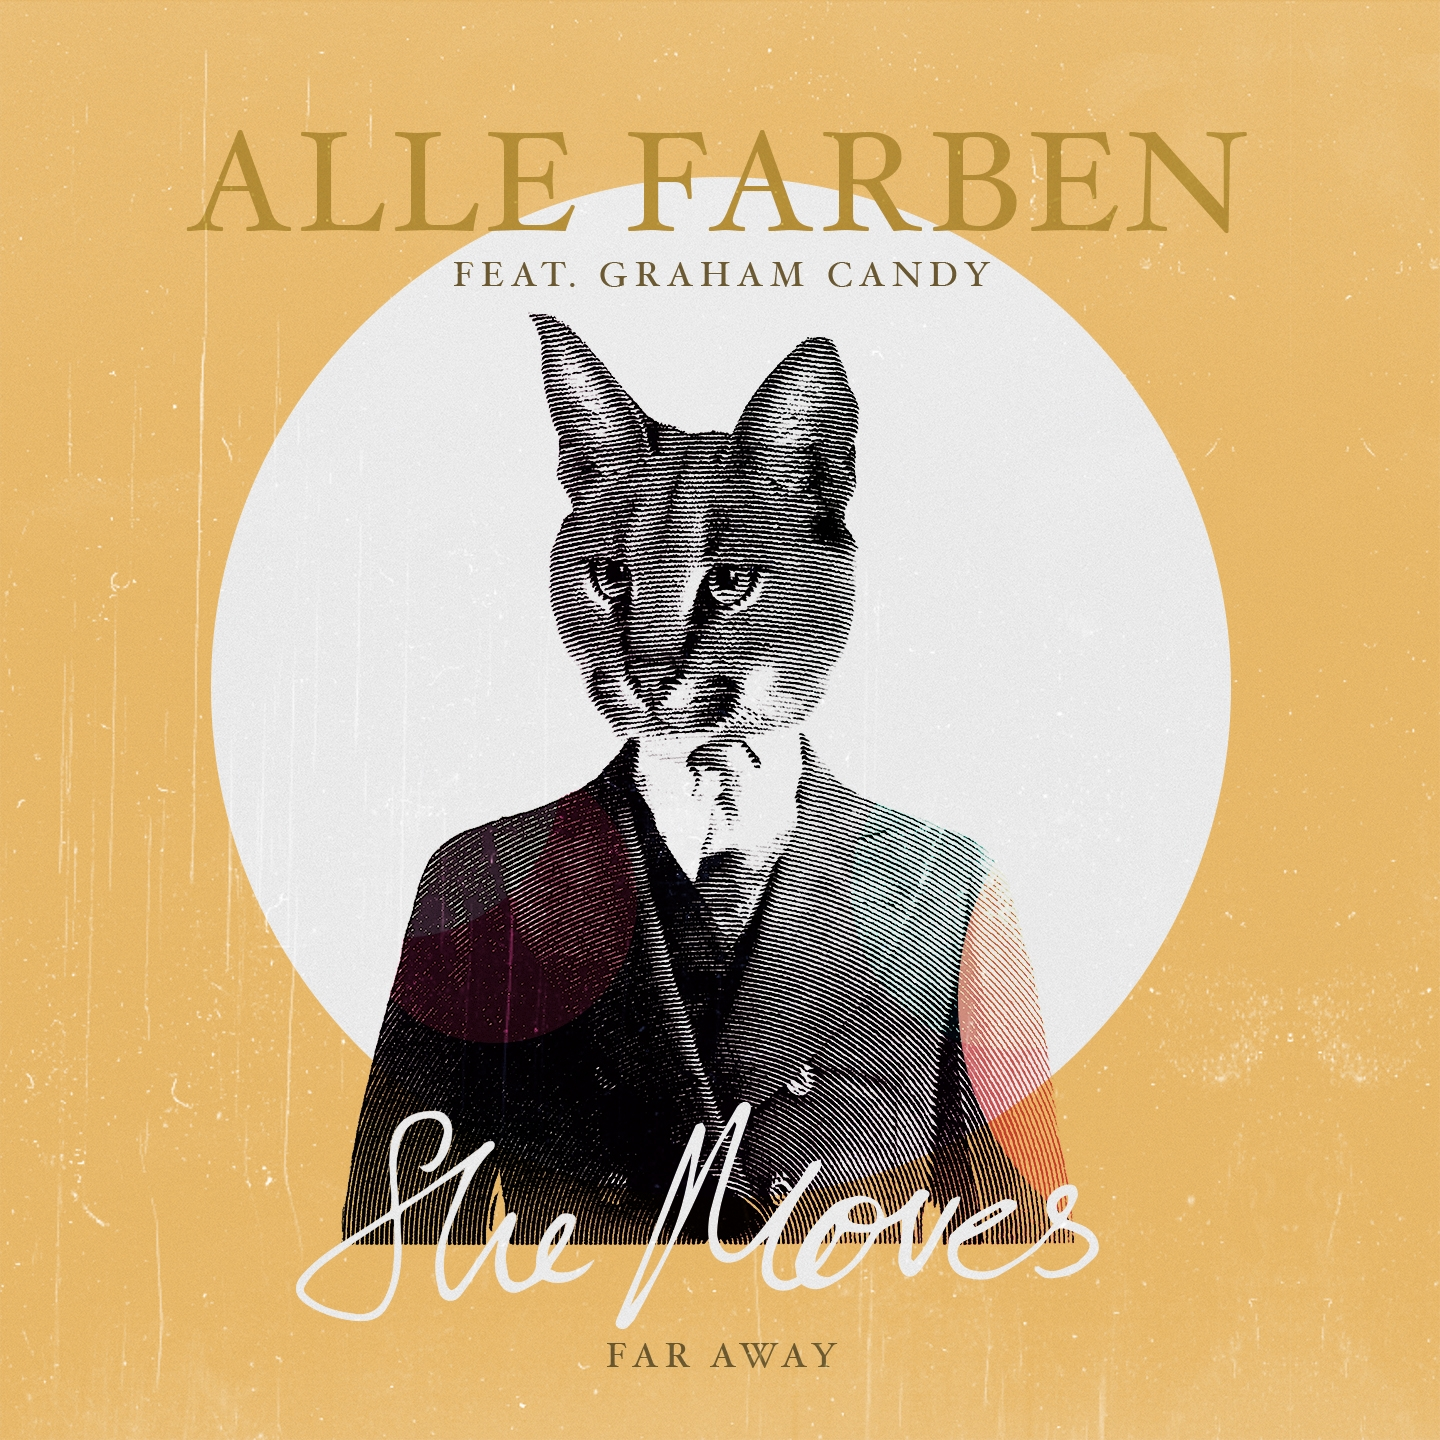 alle-farben-she-moves